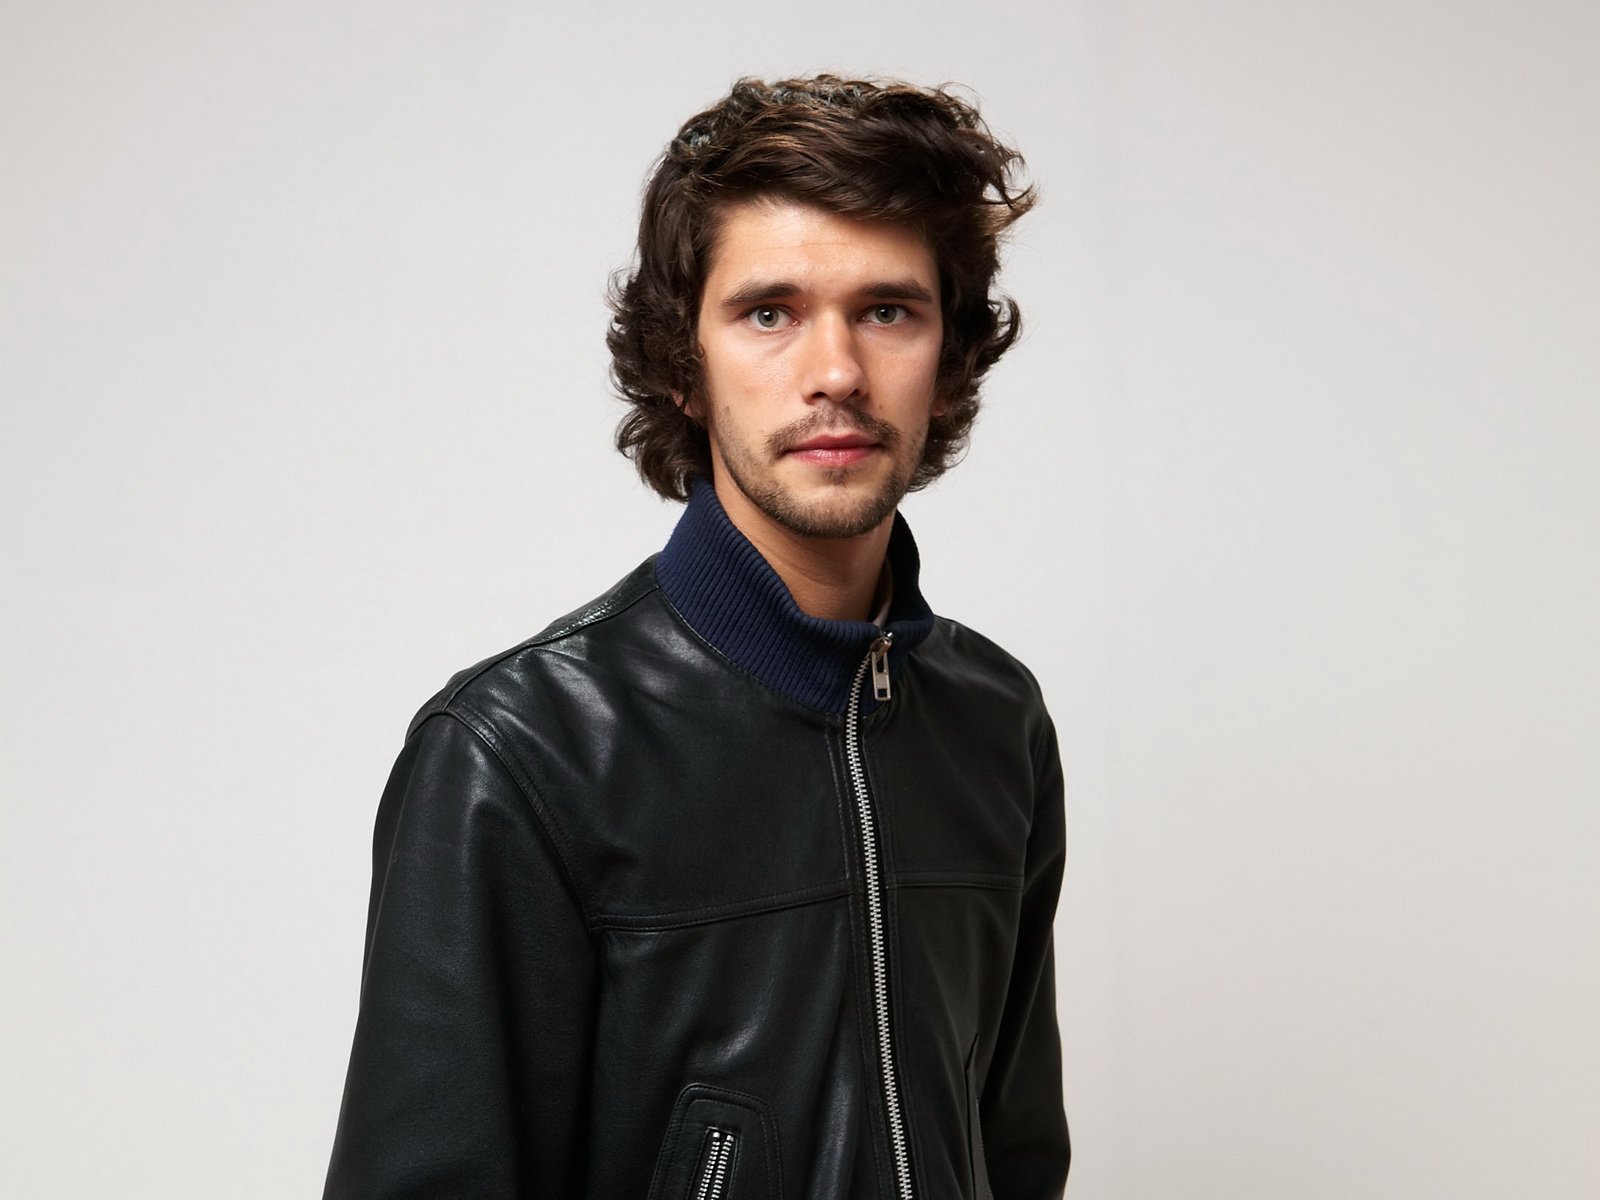 ben whishaw gif huntben whishaw tumblr, ben whishaw gif, ben whishaw 2017, ben whishaw gif hunt, ben whishaw 2016, ben whishaw theatre, ben whishaw and mark bradshaw tumblr, ben whishaw skyfall, ben whishaw prada, ben whishaw listal, ben whishaw annabel lee, ben whishaw with husband, ben whishaw and brother, ben whishaw bafta, ben whishaw sherlock, ben whishaw kimdir, ben whishaw gay scenes, ben whishaw hologram for the king, ben whishaw interview, ben whishaw weight height